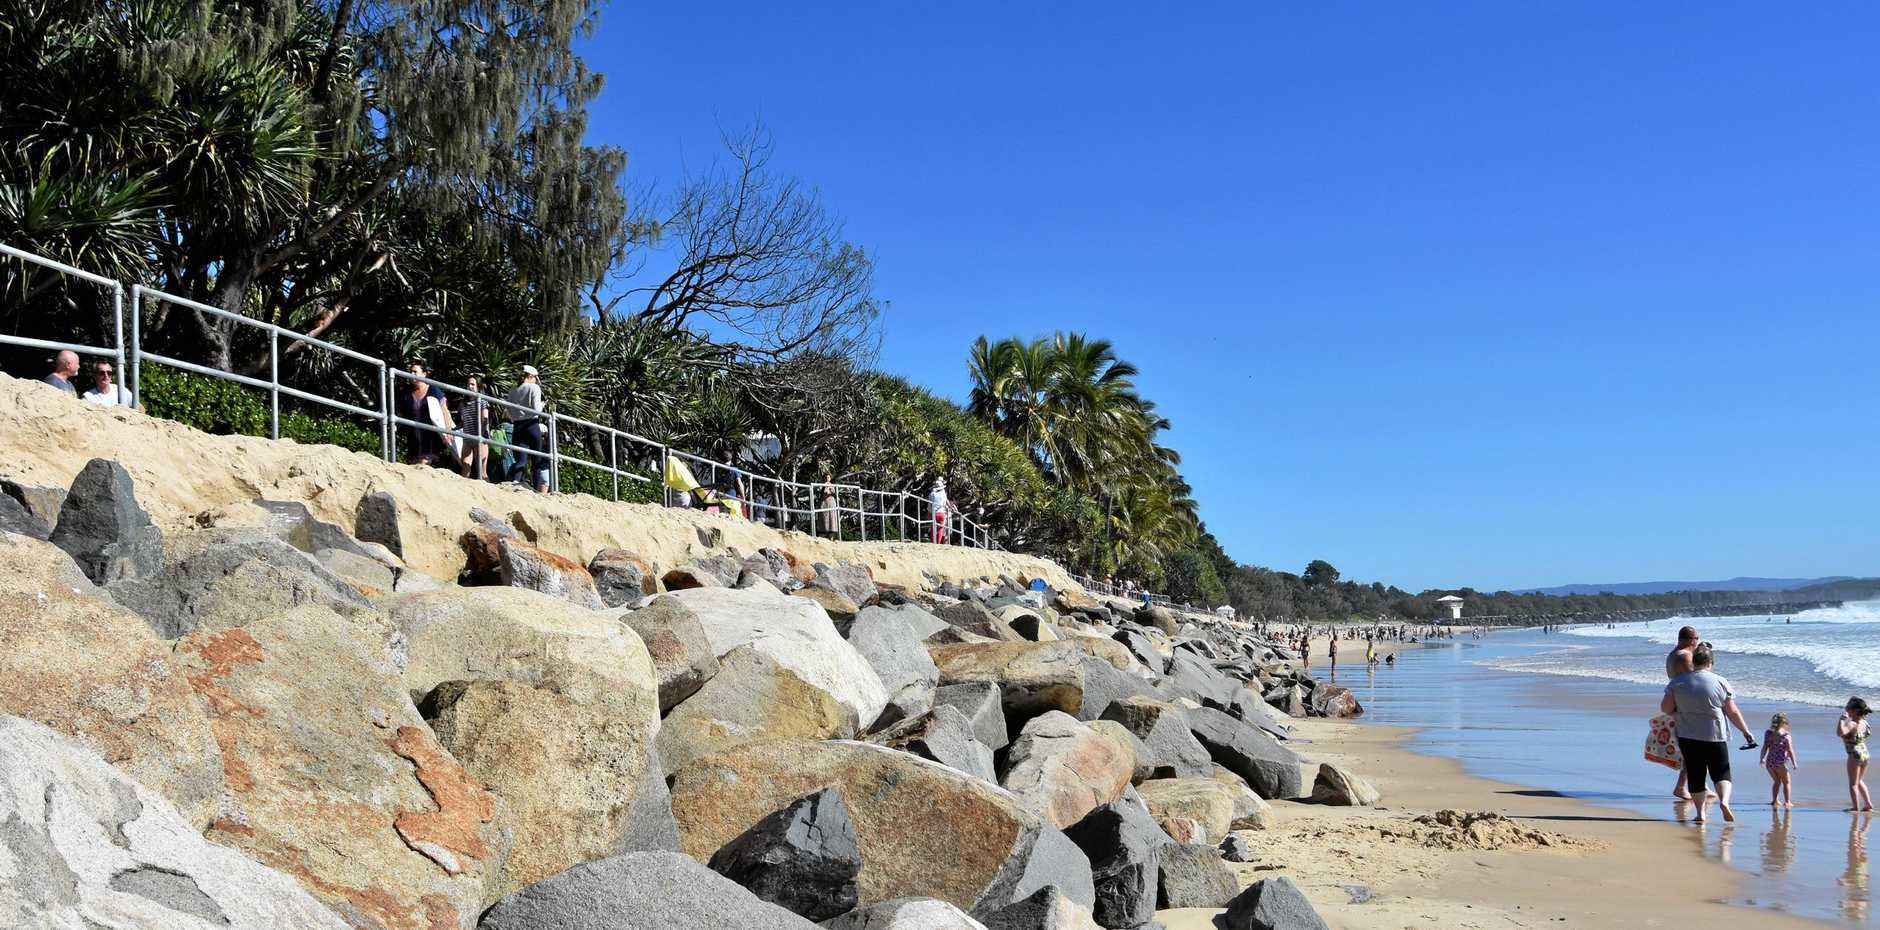 EROSION: It's deja vu at Noosa Main Beach as recent huge swell has once again striped sand from the beach.